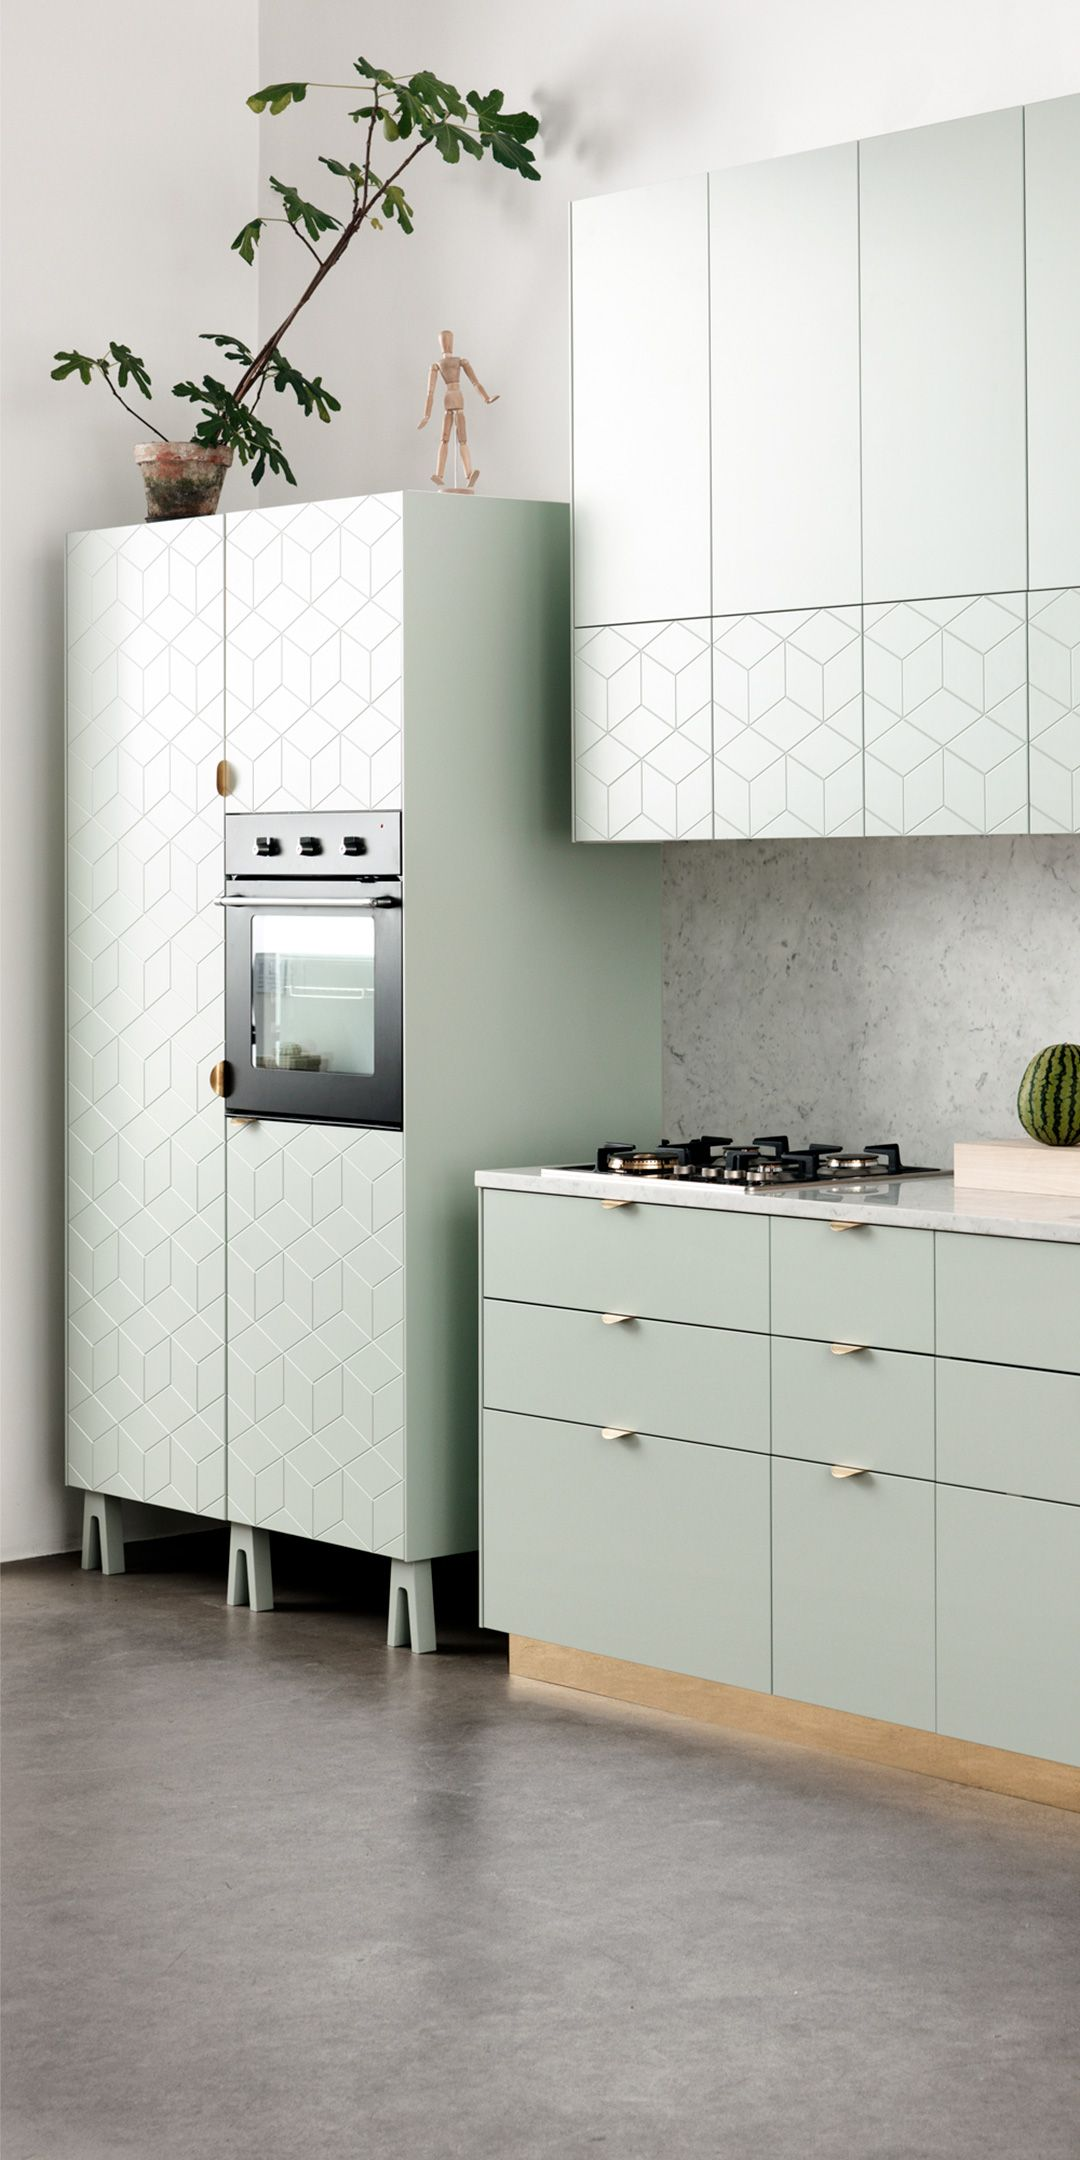 Best Kitchen Built On Ikea Metod Cabinets Get Fronts Handles 640 x 480